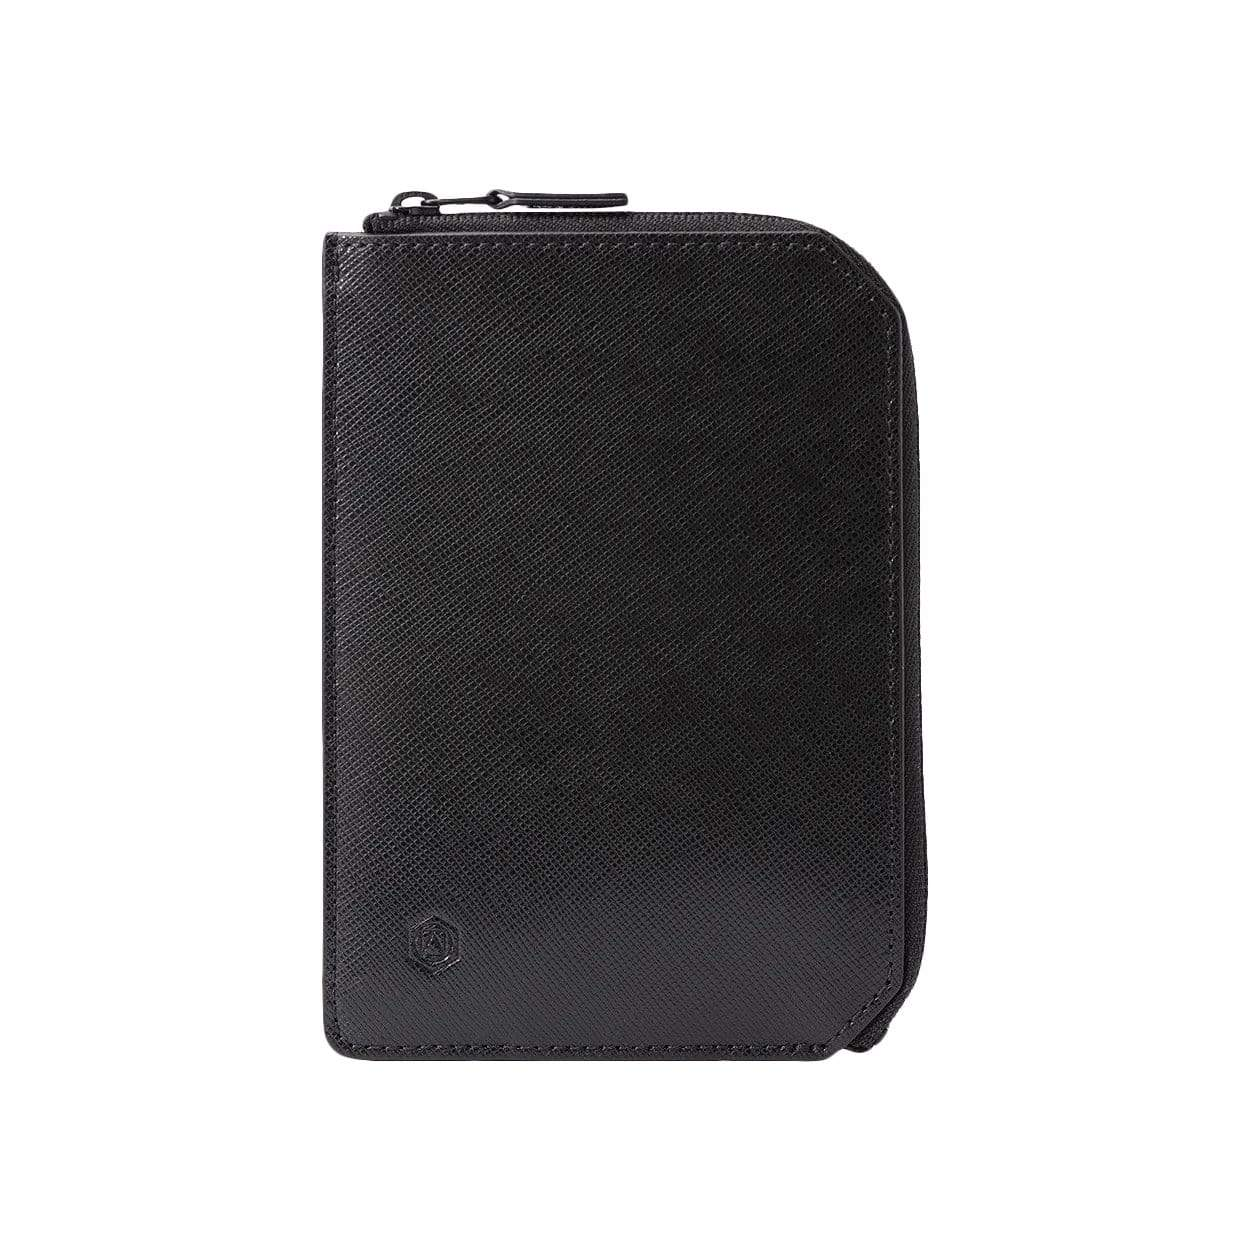 Diplomat Blacktie Travel Case